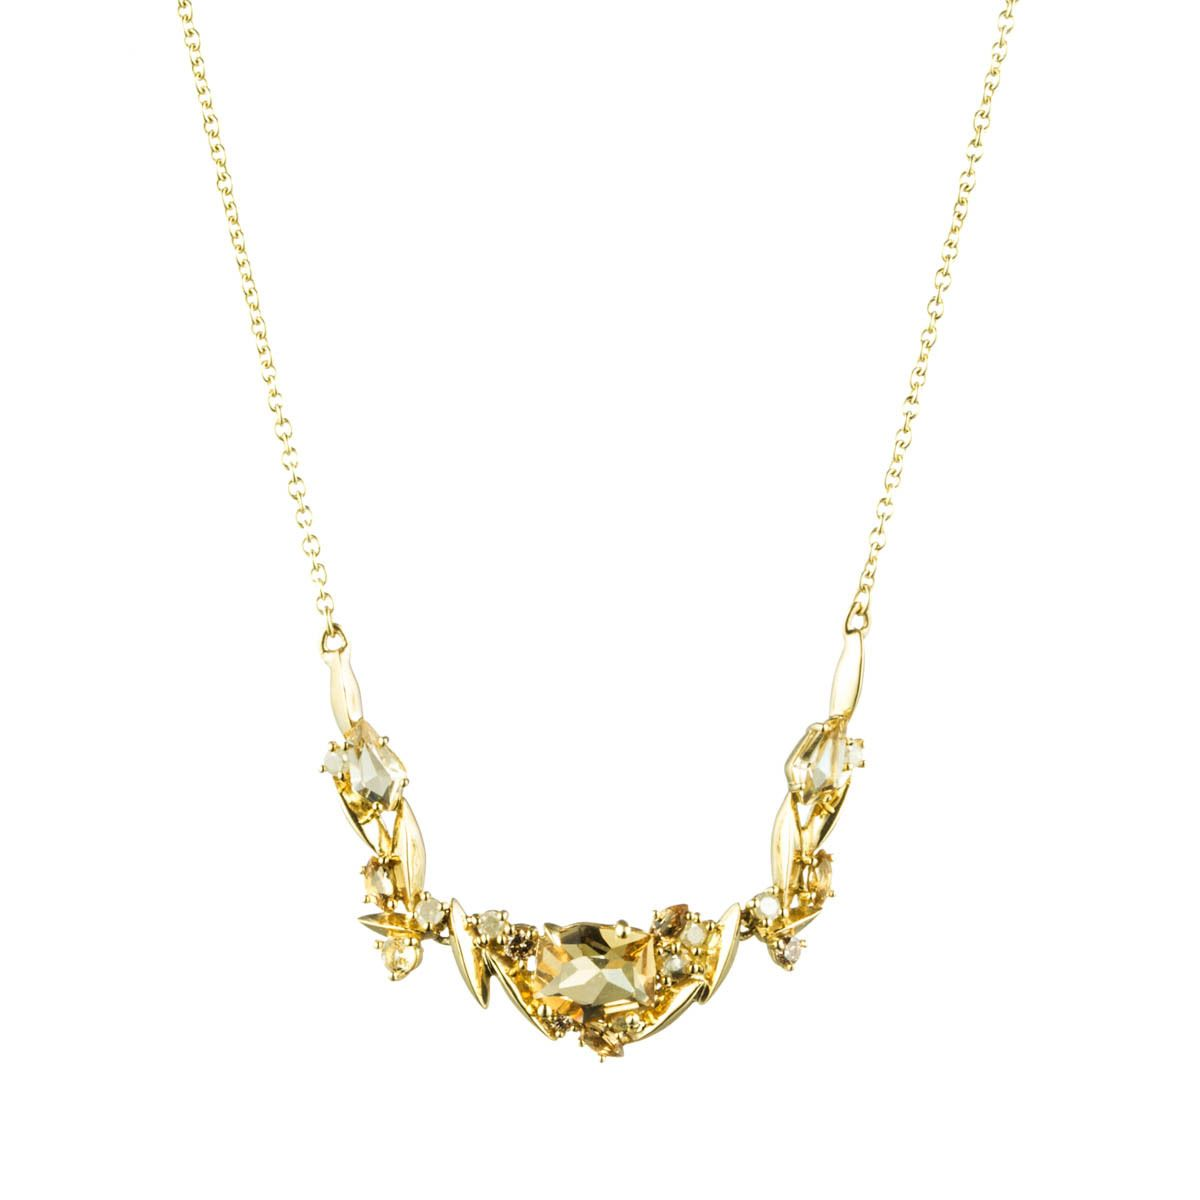 black link boutique current alexis necklace zm product bittar